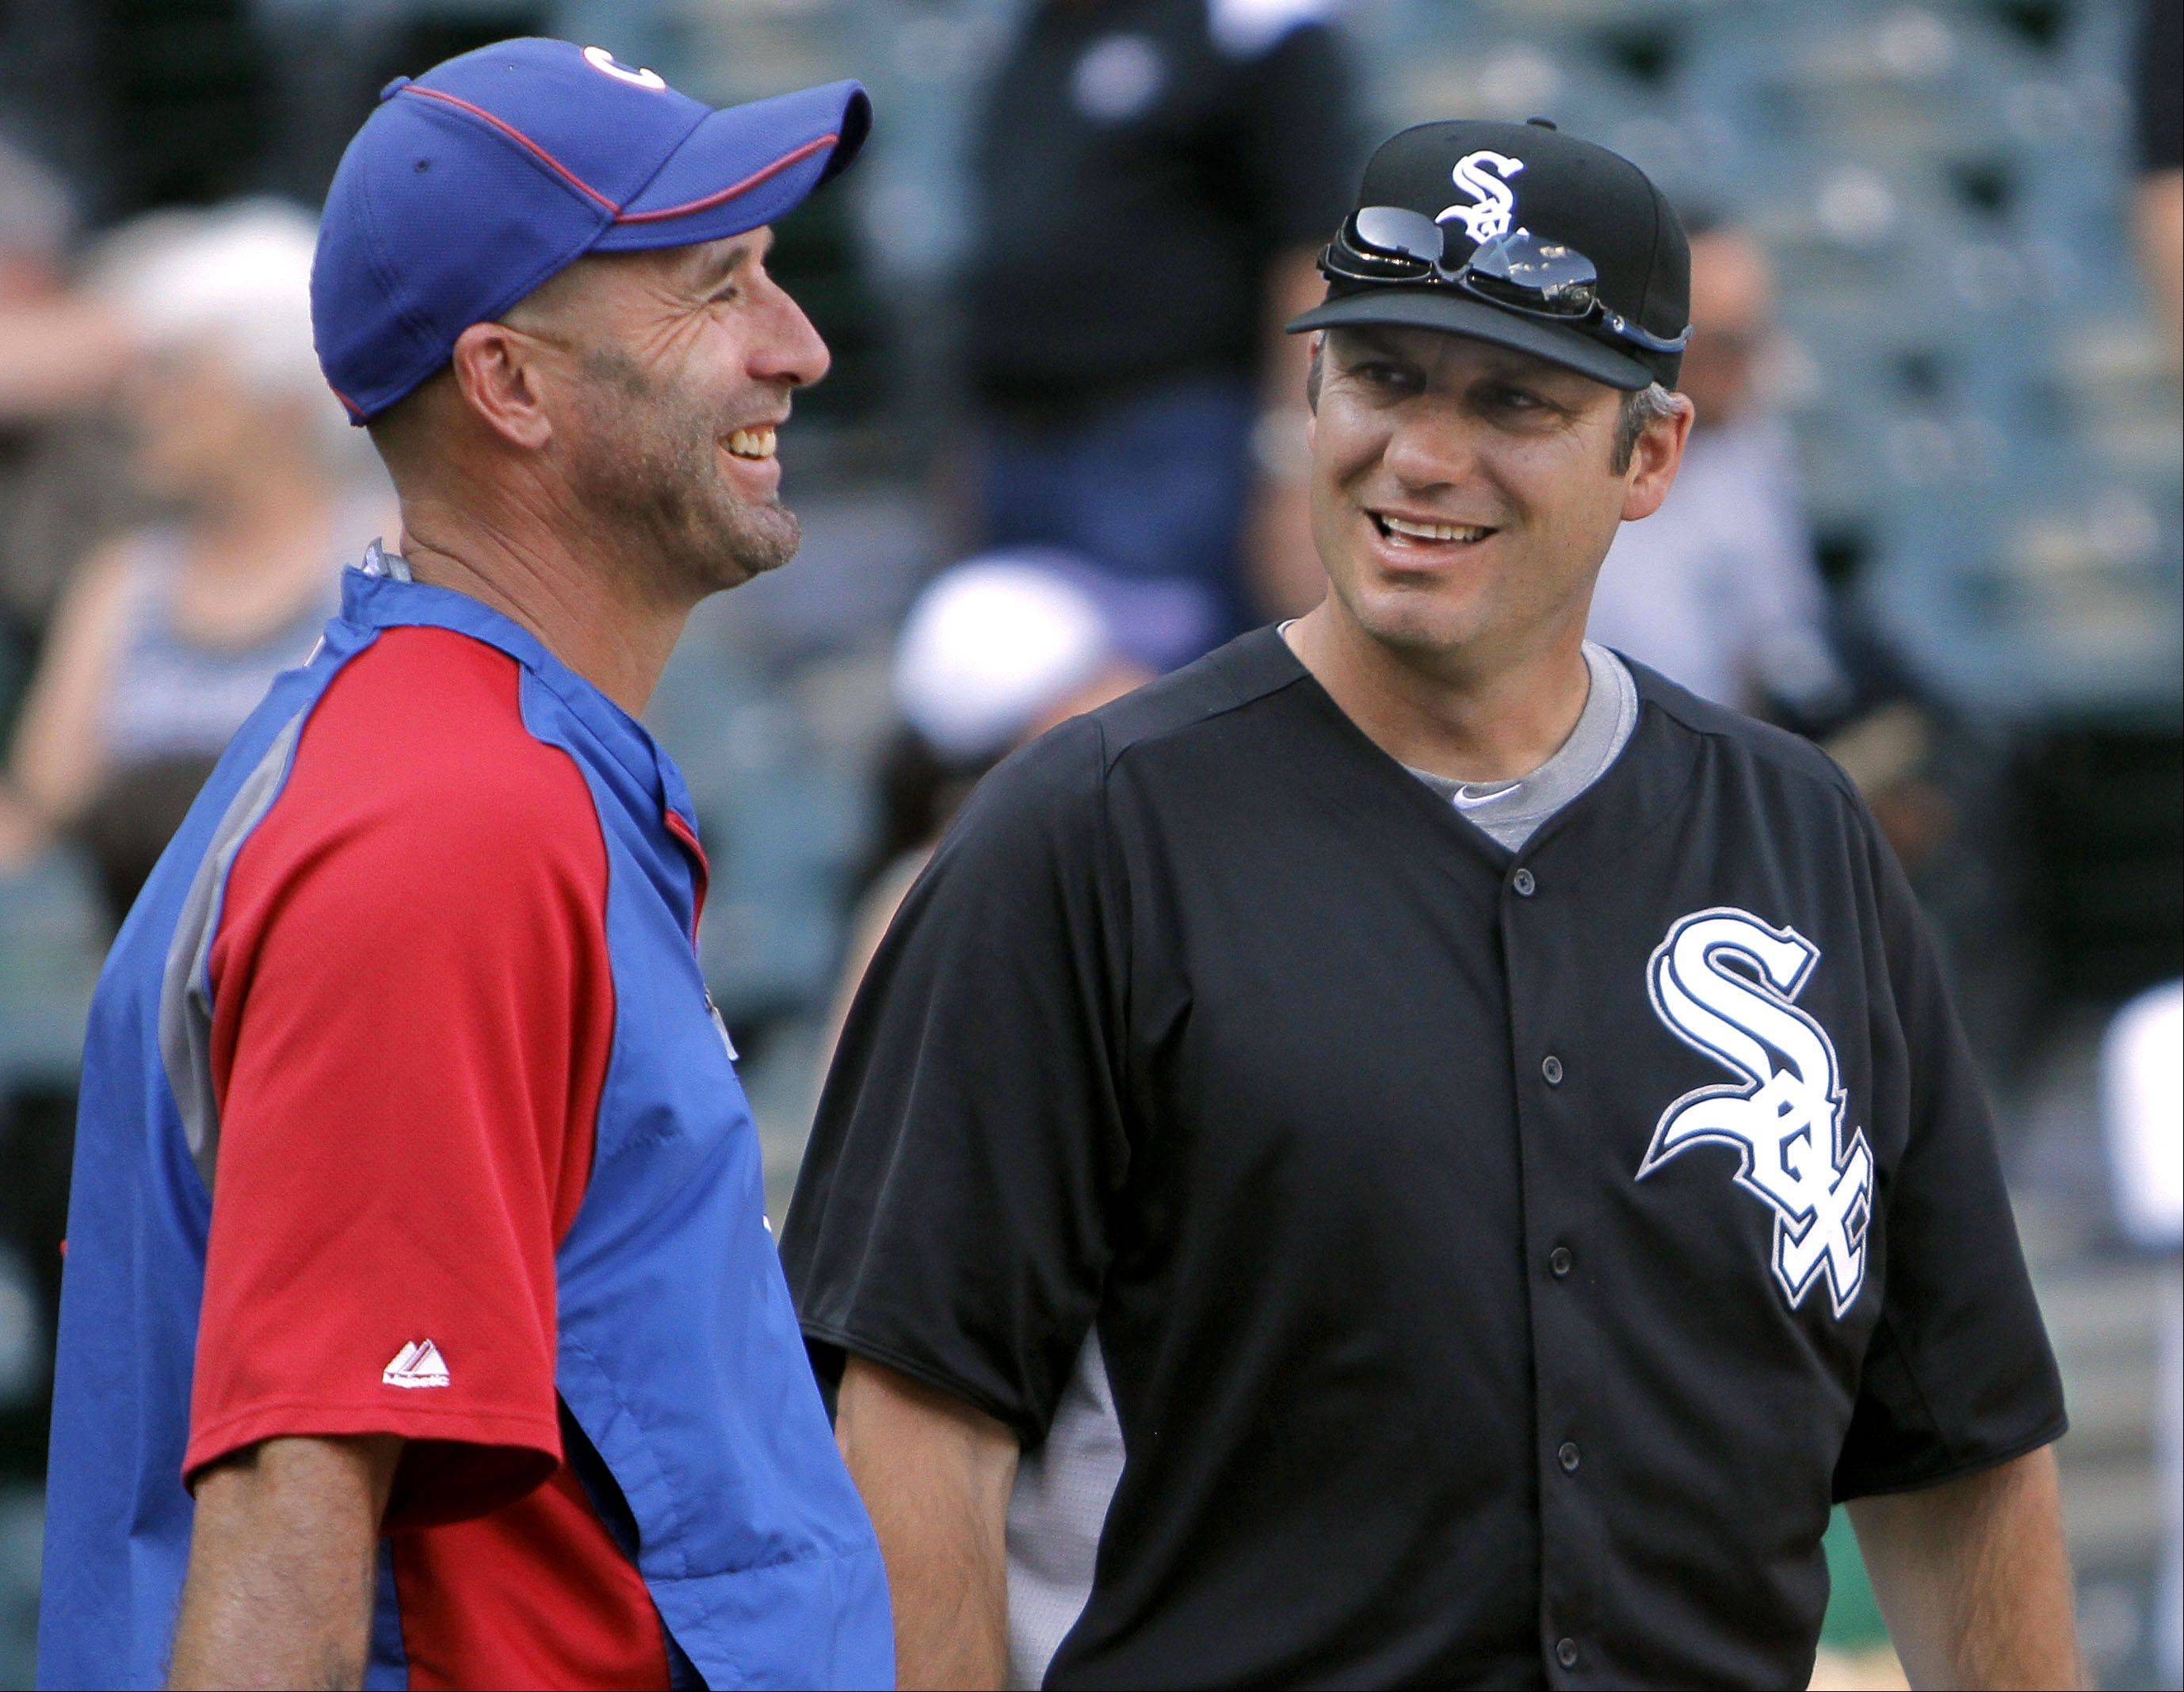 Chicago Cubs manager Dale Sveum, left, and Chicago White Sox manager Robin Ventura chat before the game.